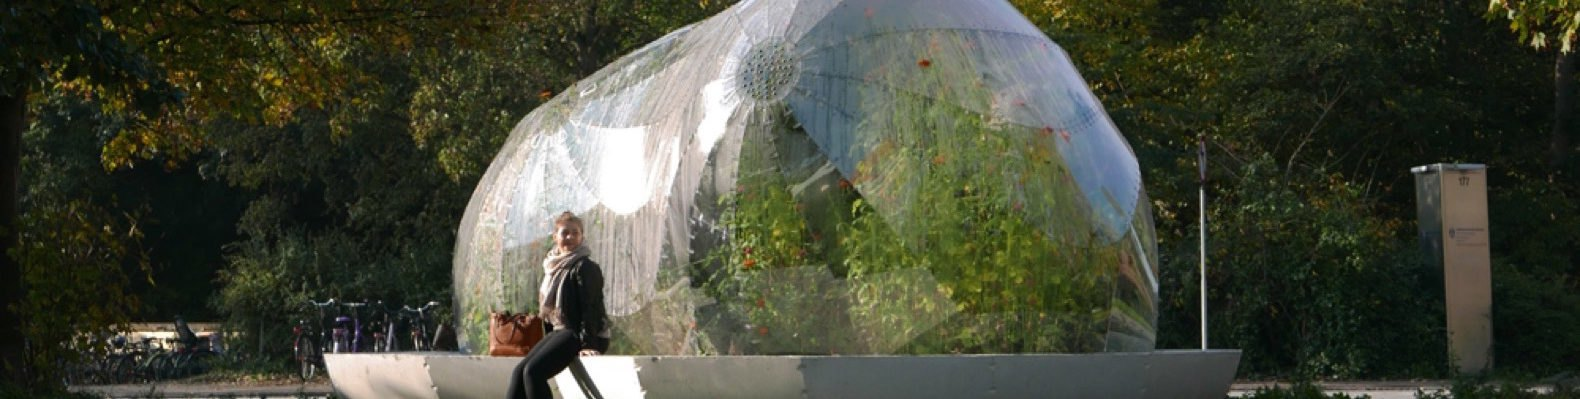 bubble-like dome filled with plants and woman sitting beside it